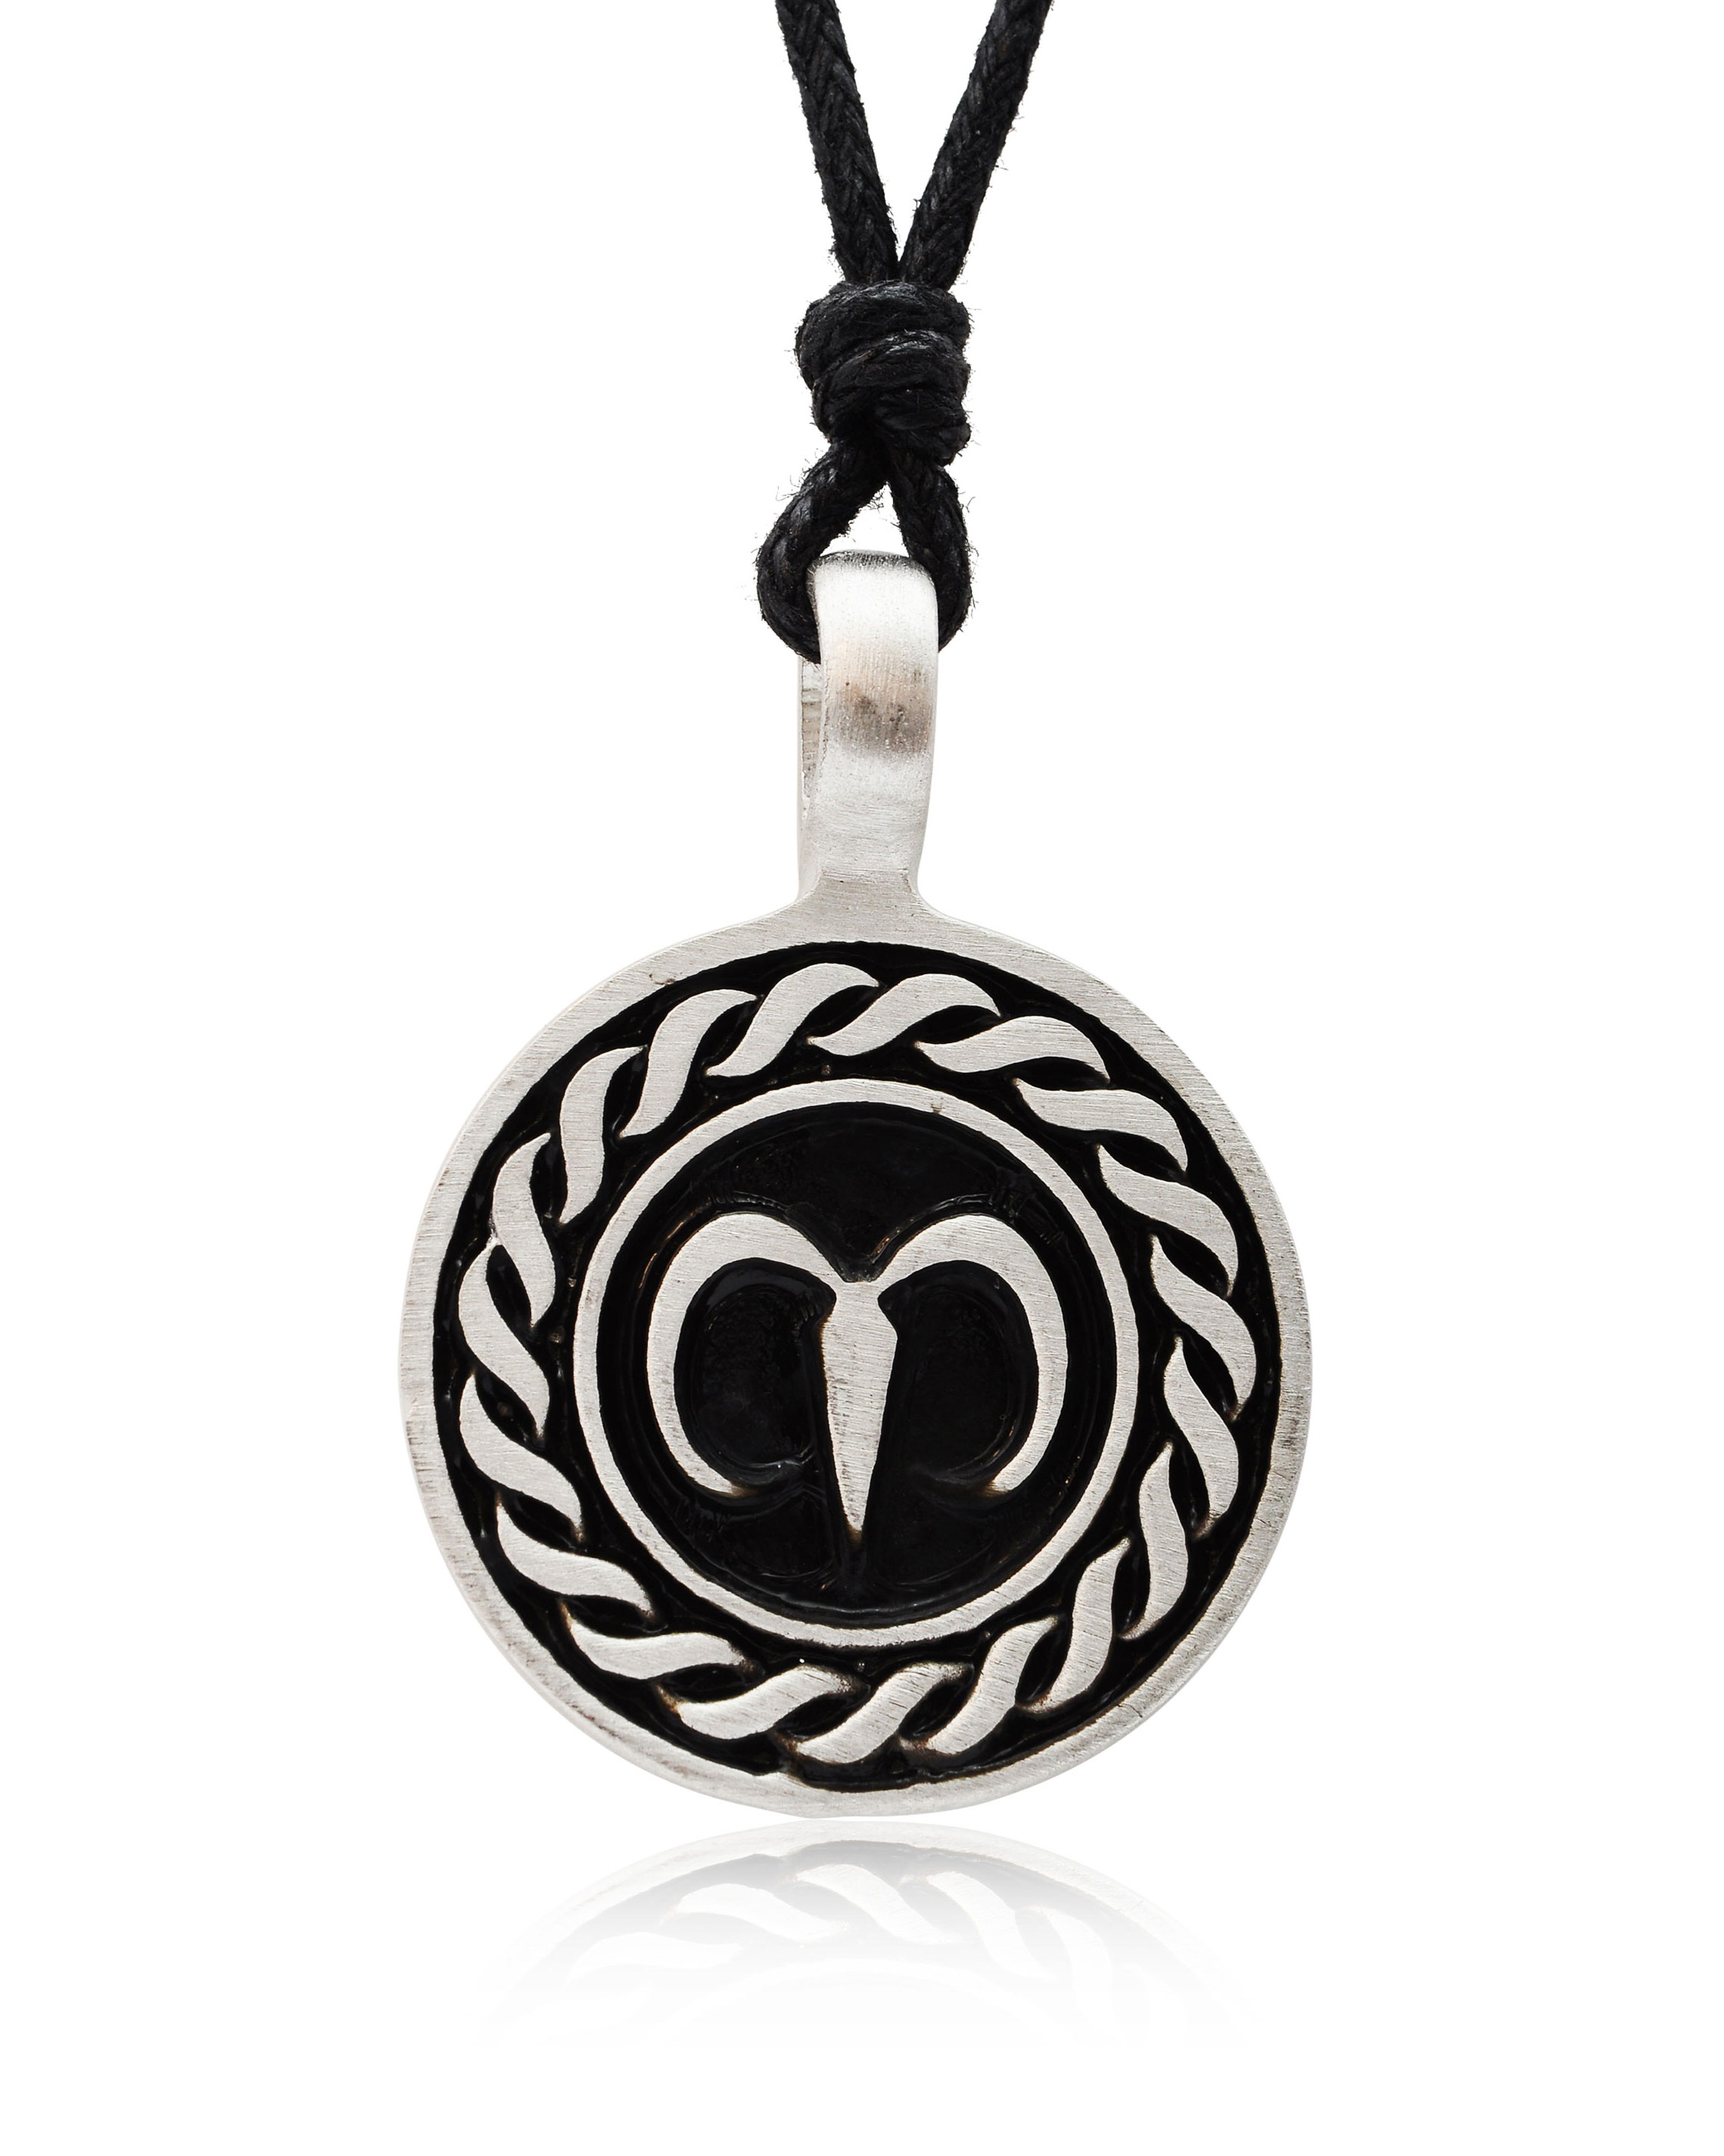 Astrology Sign Horoscope Silver Pewter Charm Necklace ... - photo#24